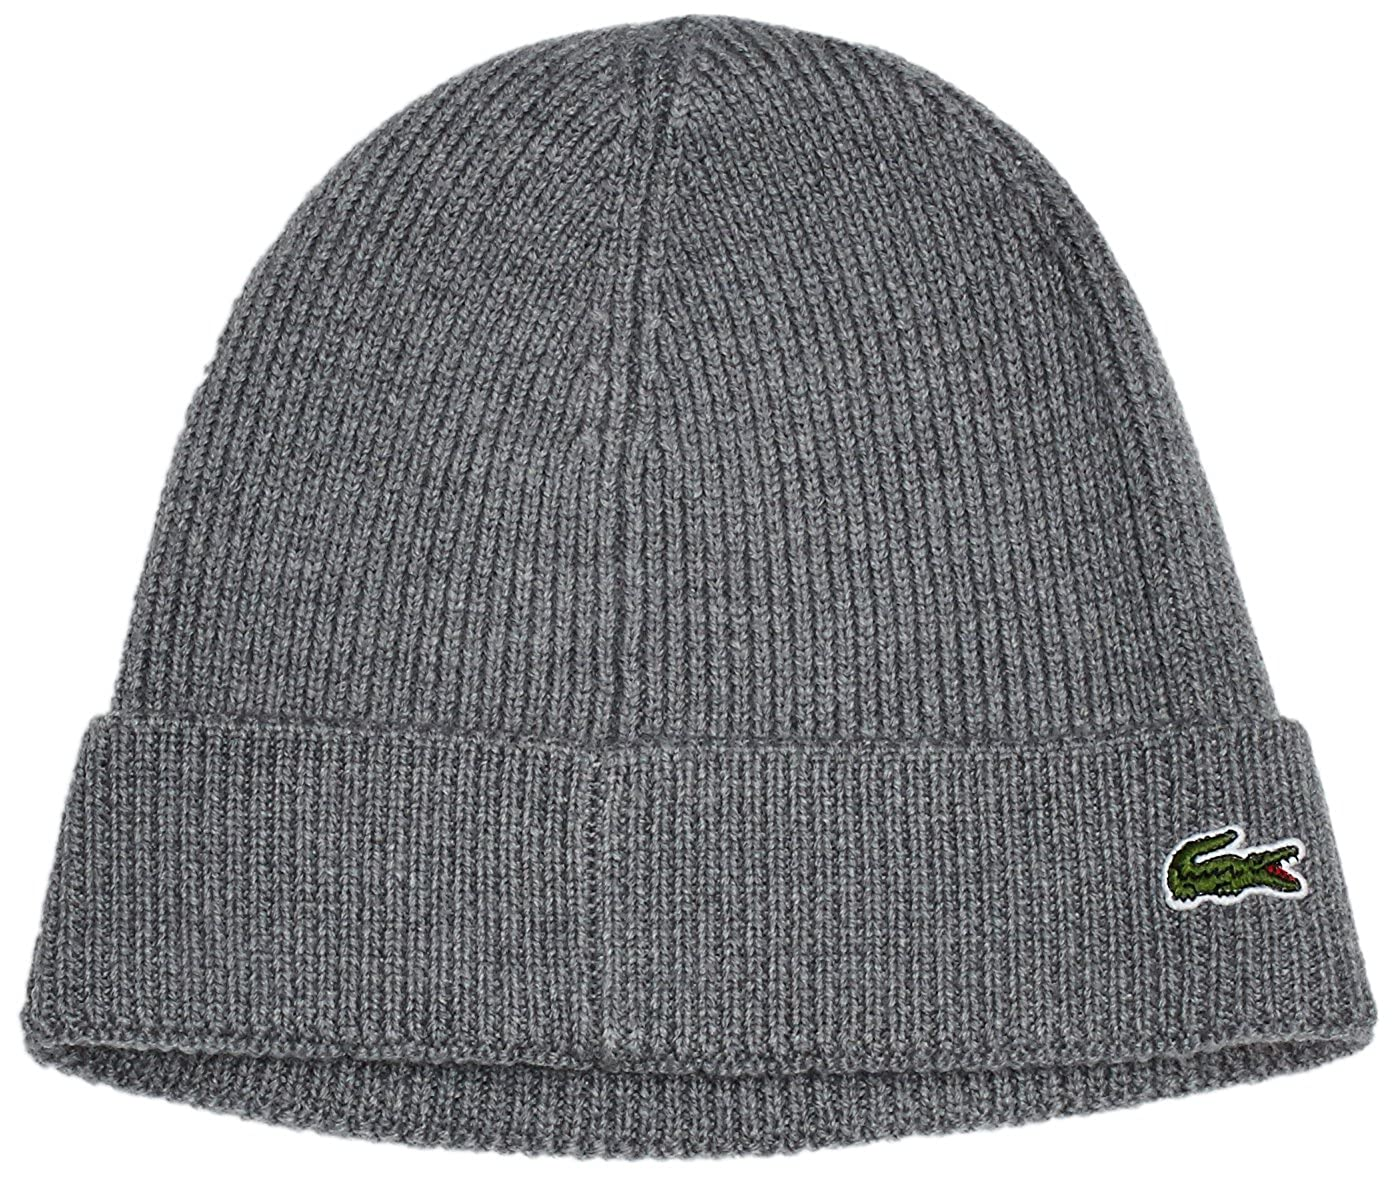 Lacoste Men s Ribbed Beanie with Flap Accessories  Amazon.co.uk  Clothing 7cddccdf41